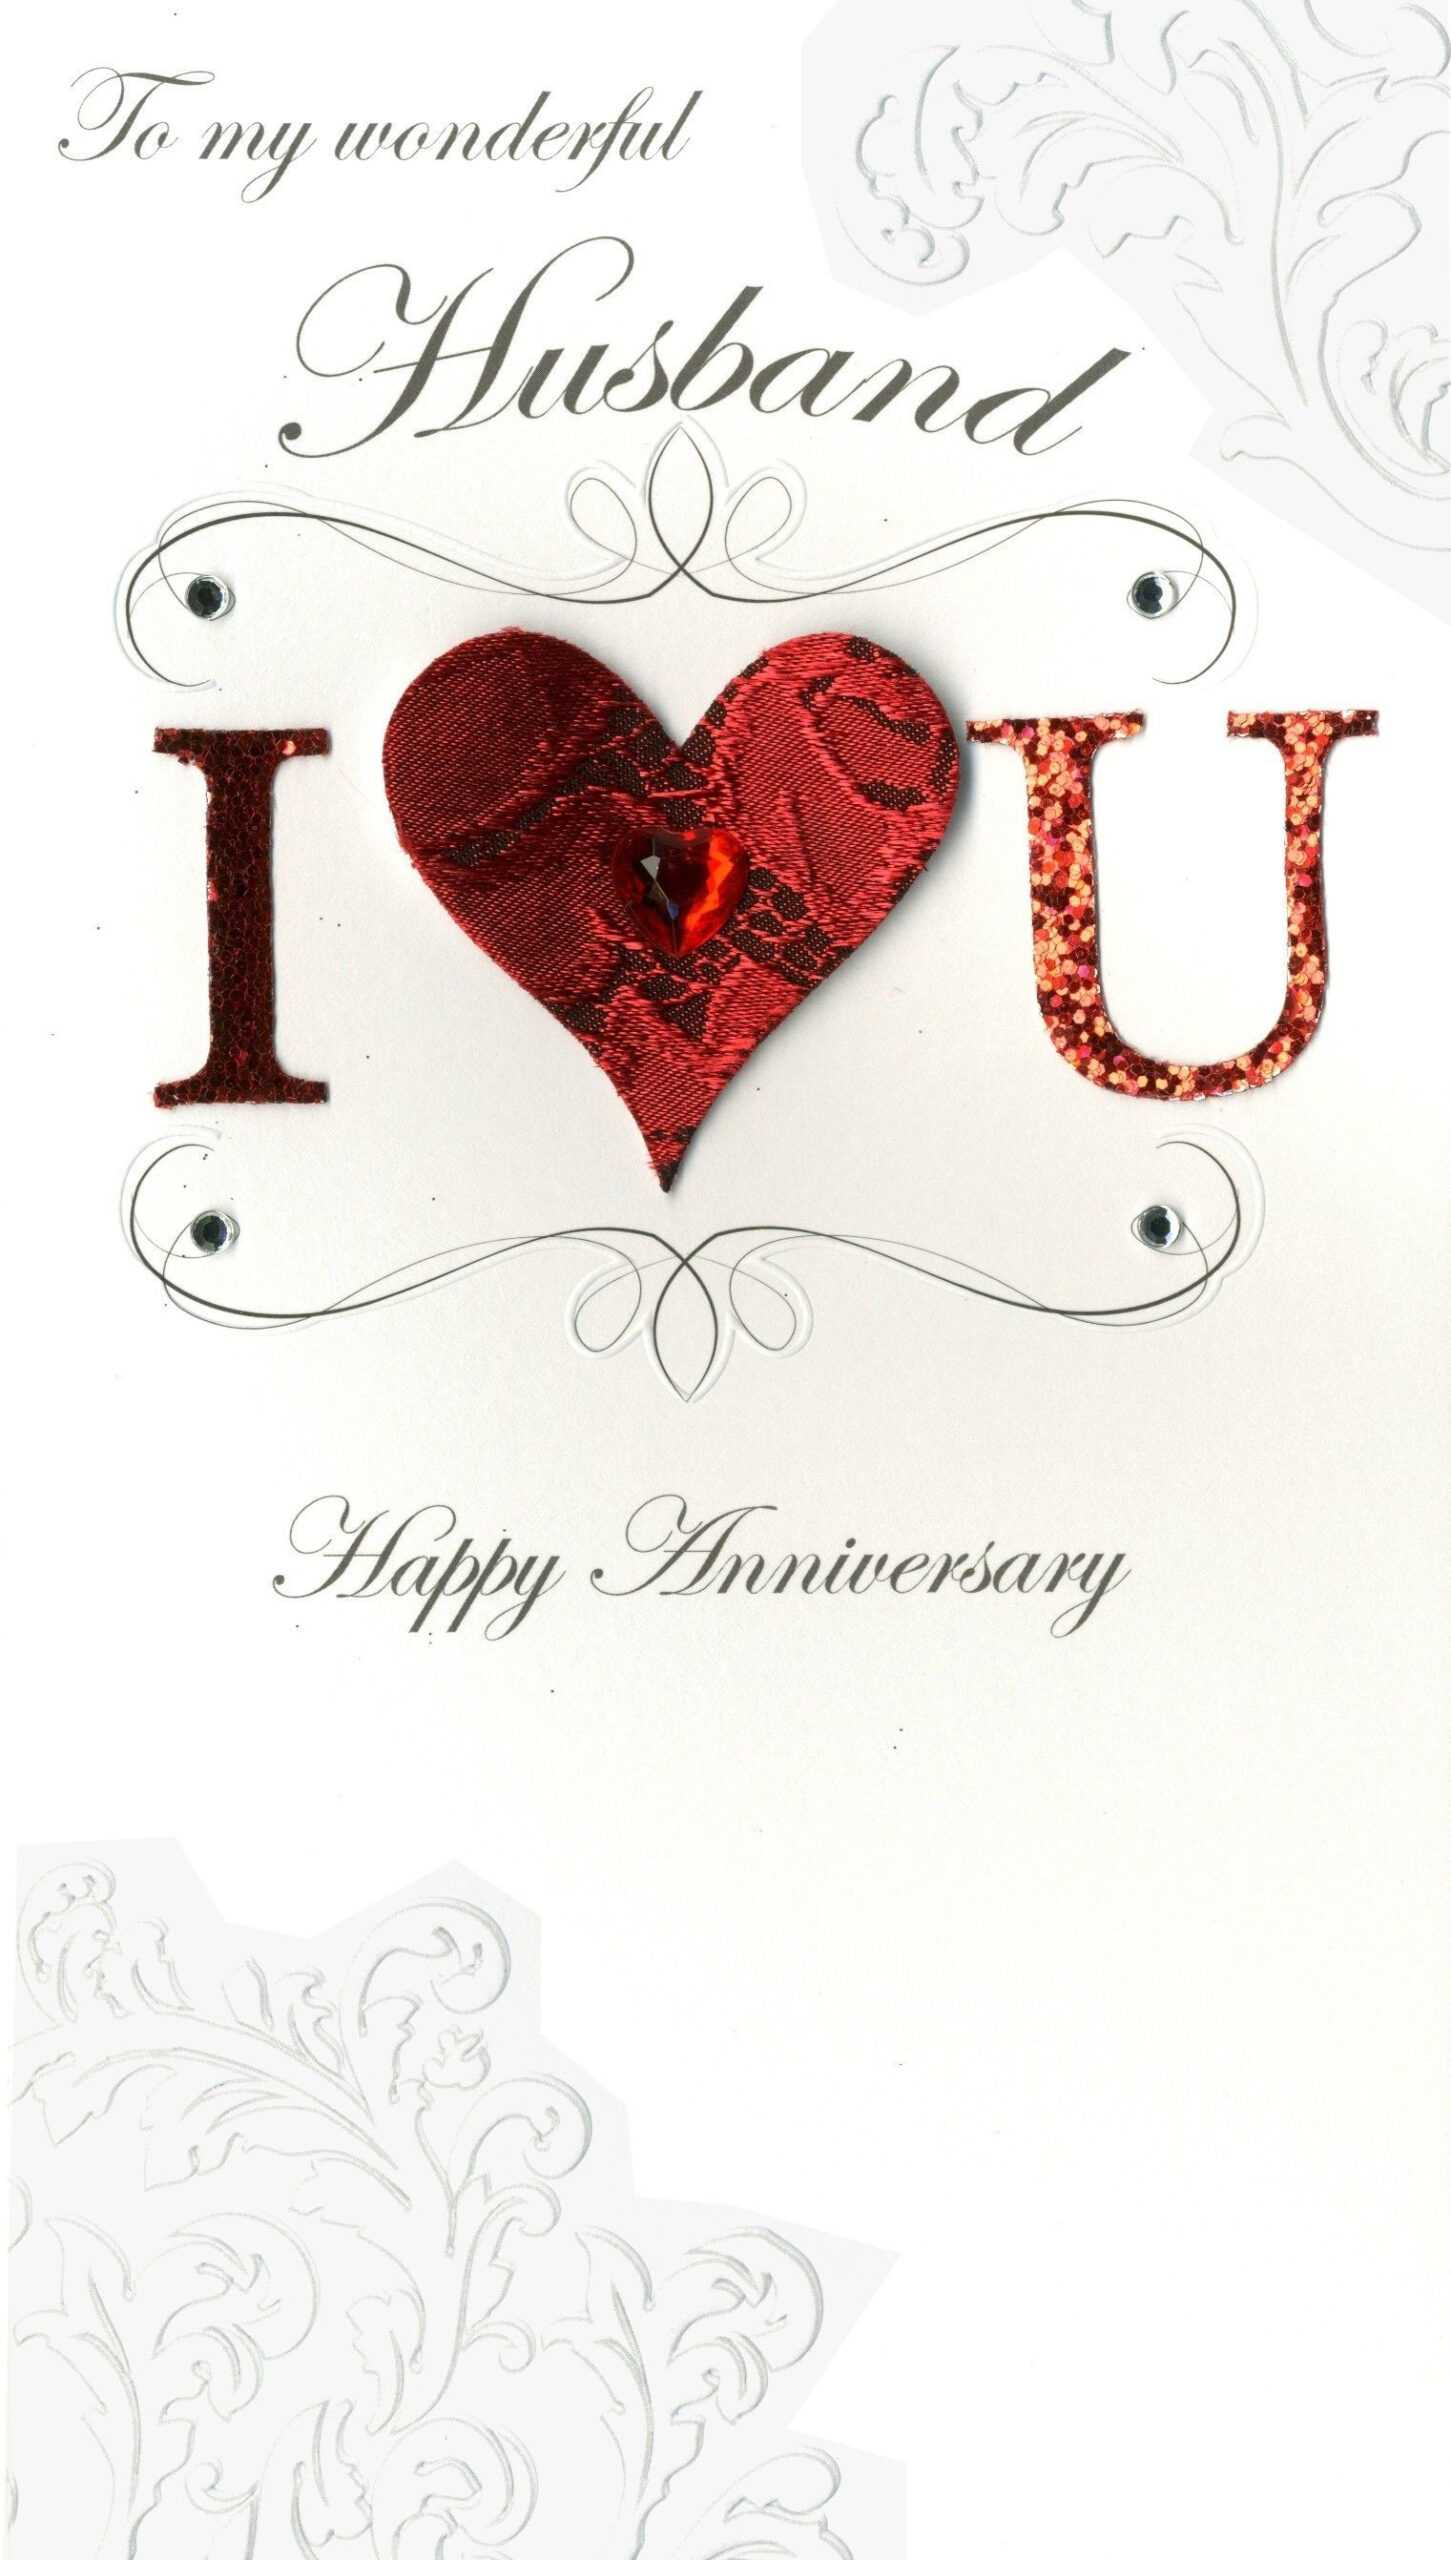 Anniversary Card Template For Word - Karan.ald2014 Intended For Anniversary Card Template Word